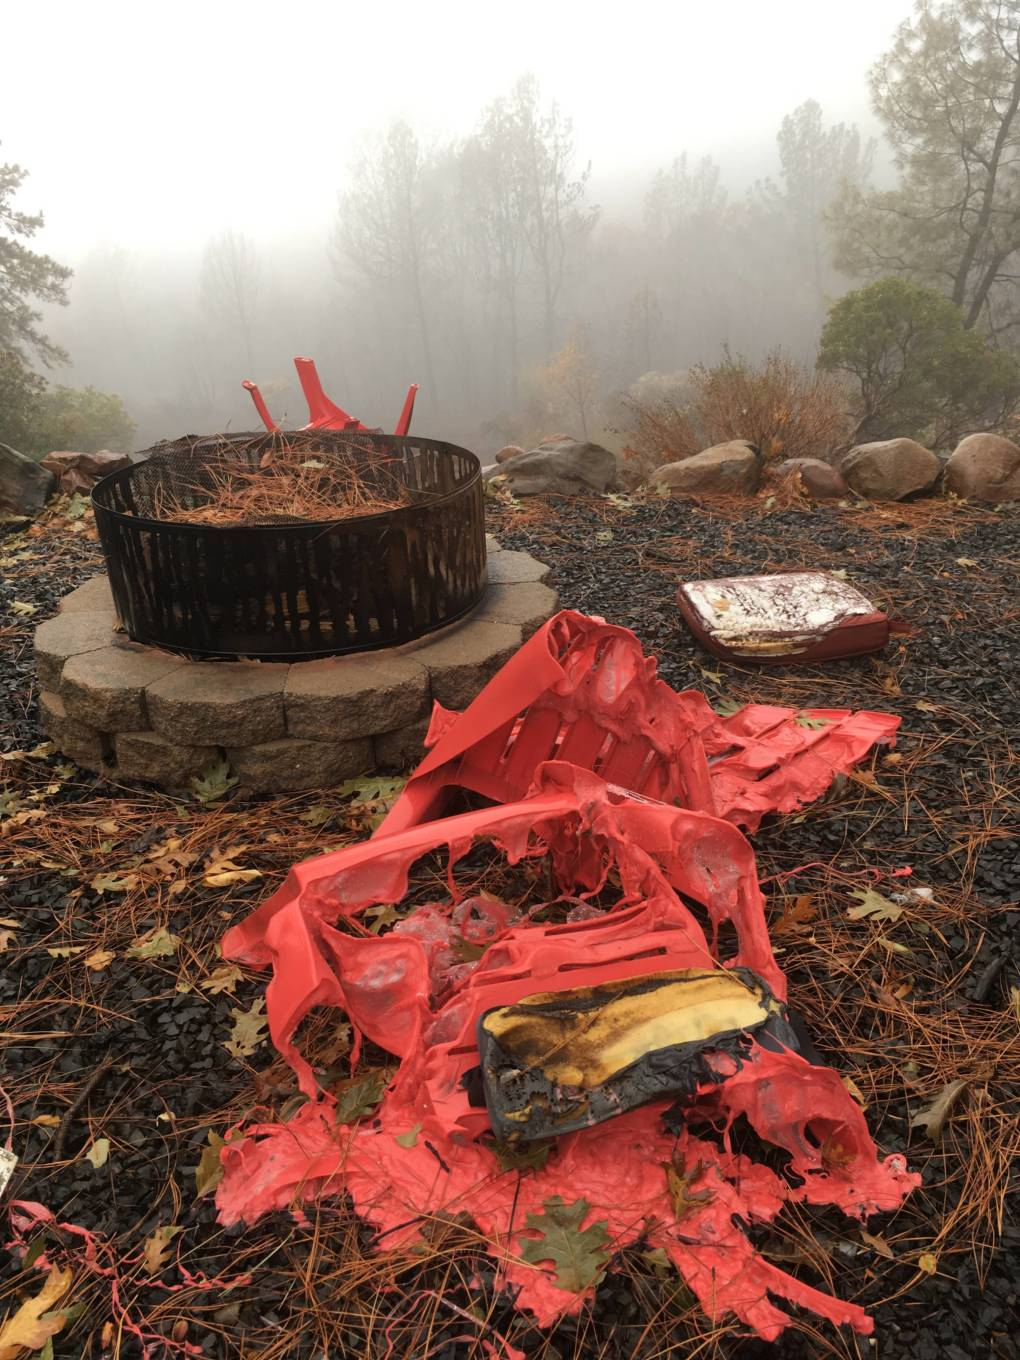 A melted lawn chair sits by the fire pit. (KQED/Myrow)